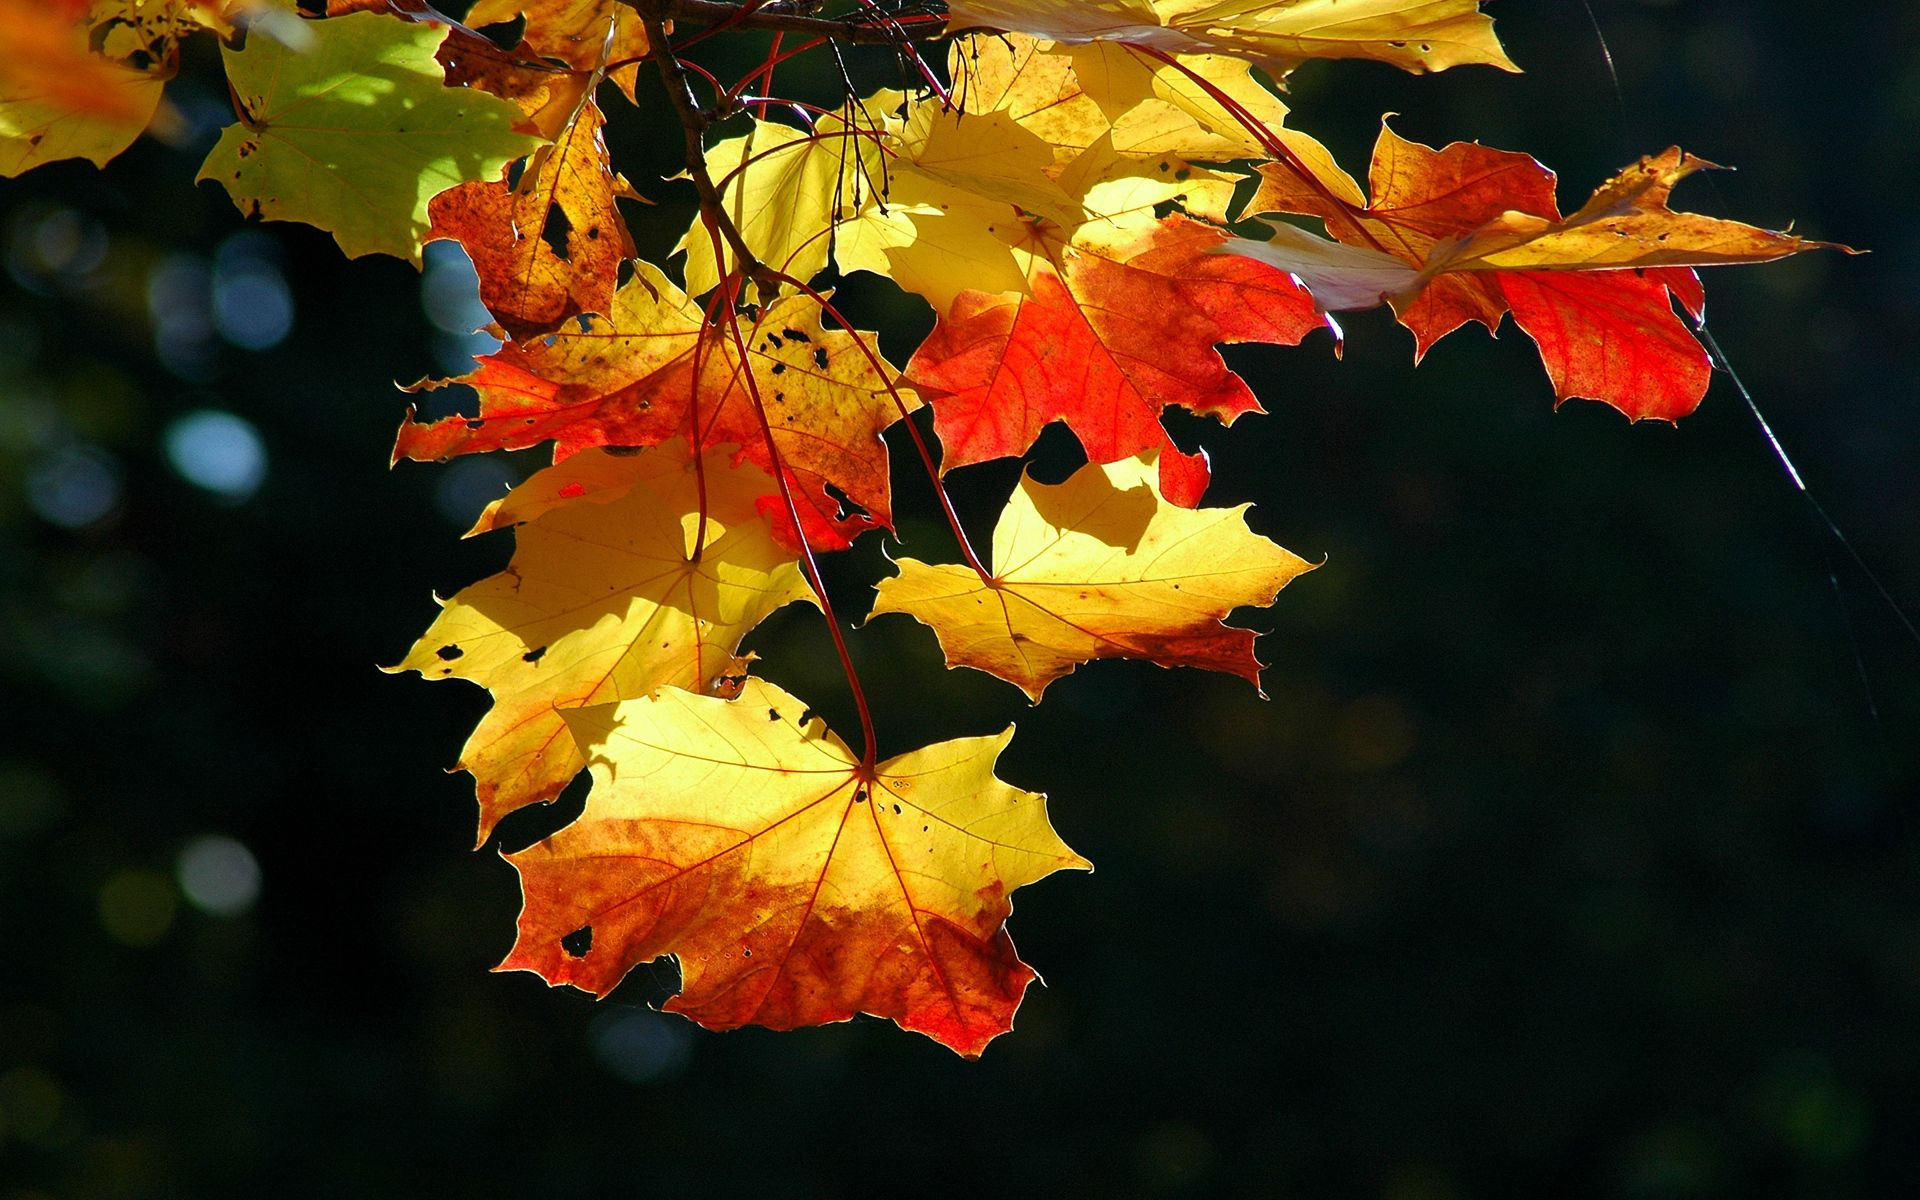 137478 download wallpaper Nature, Leaves, Maple, Dry, Shine, Light screensavers and pictures for free